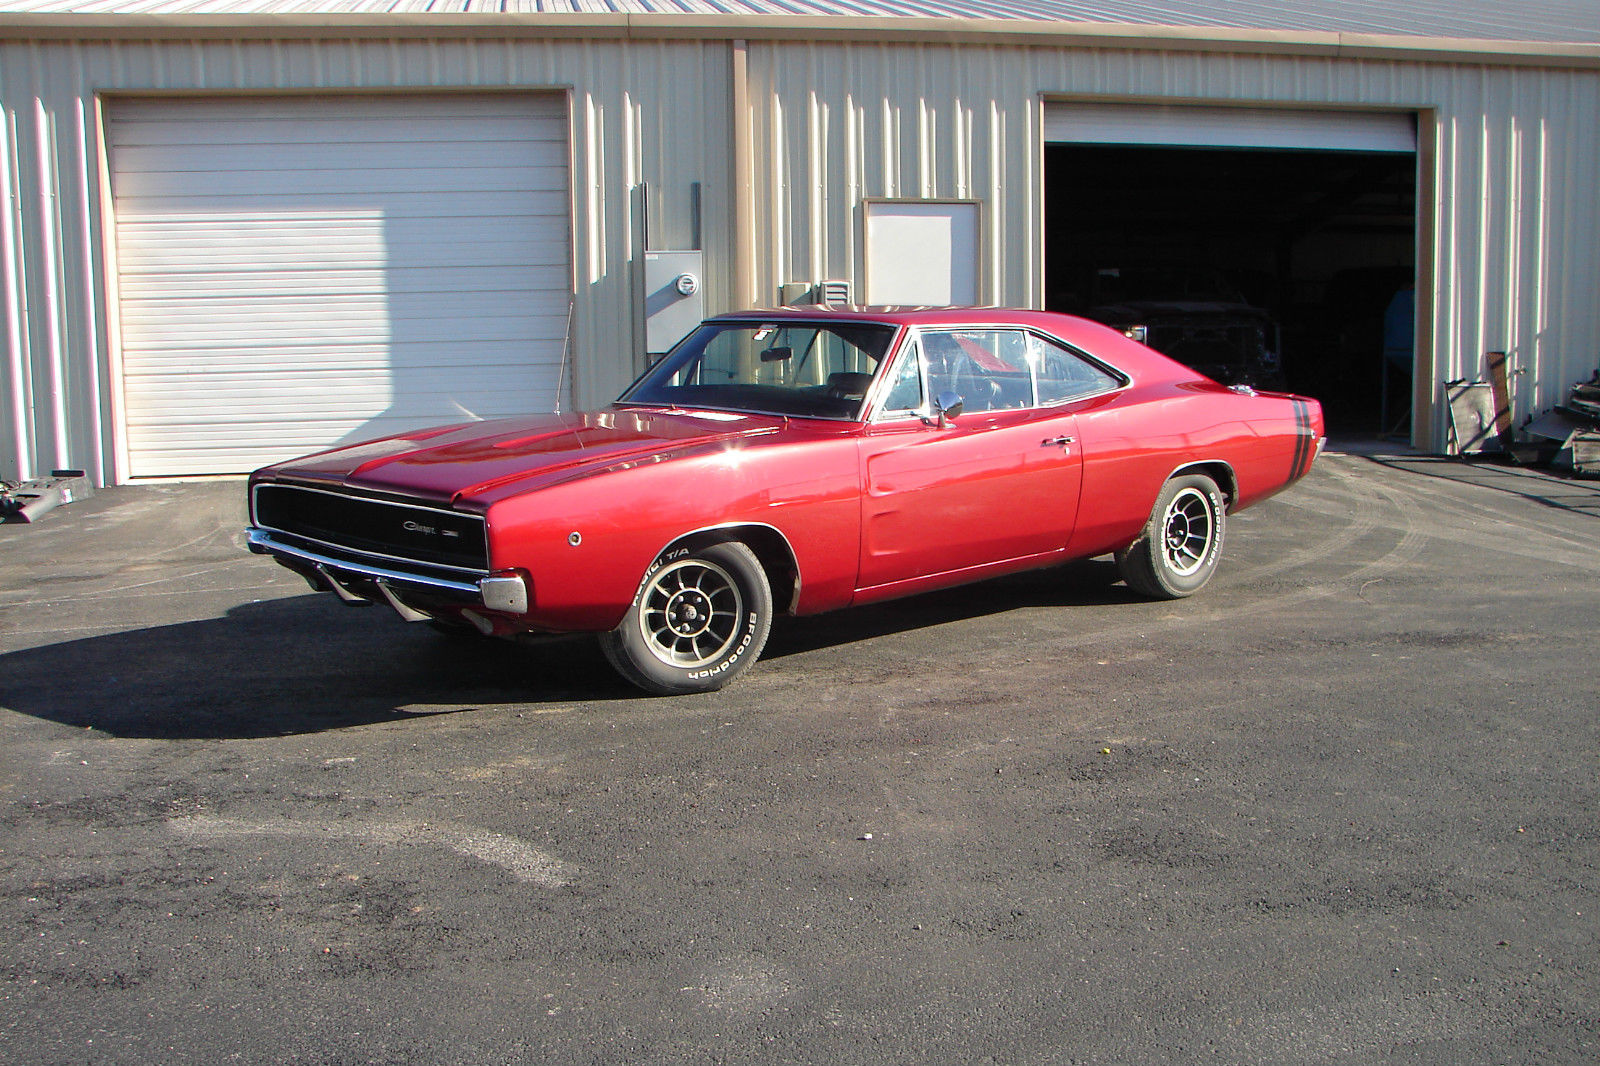 1968 Dodge Charger Project - Project Cars For Sale